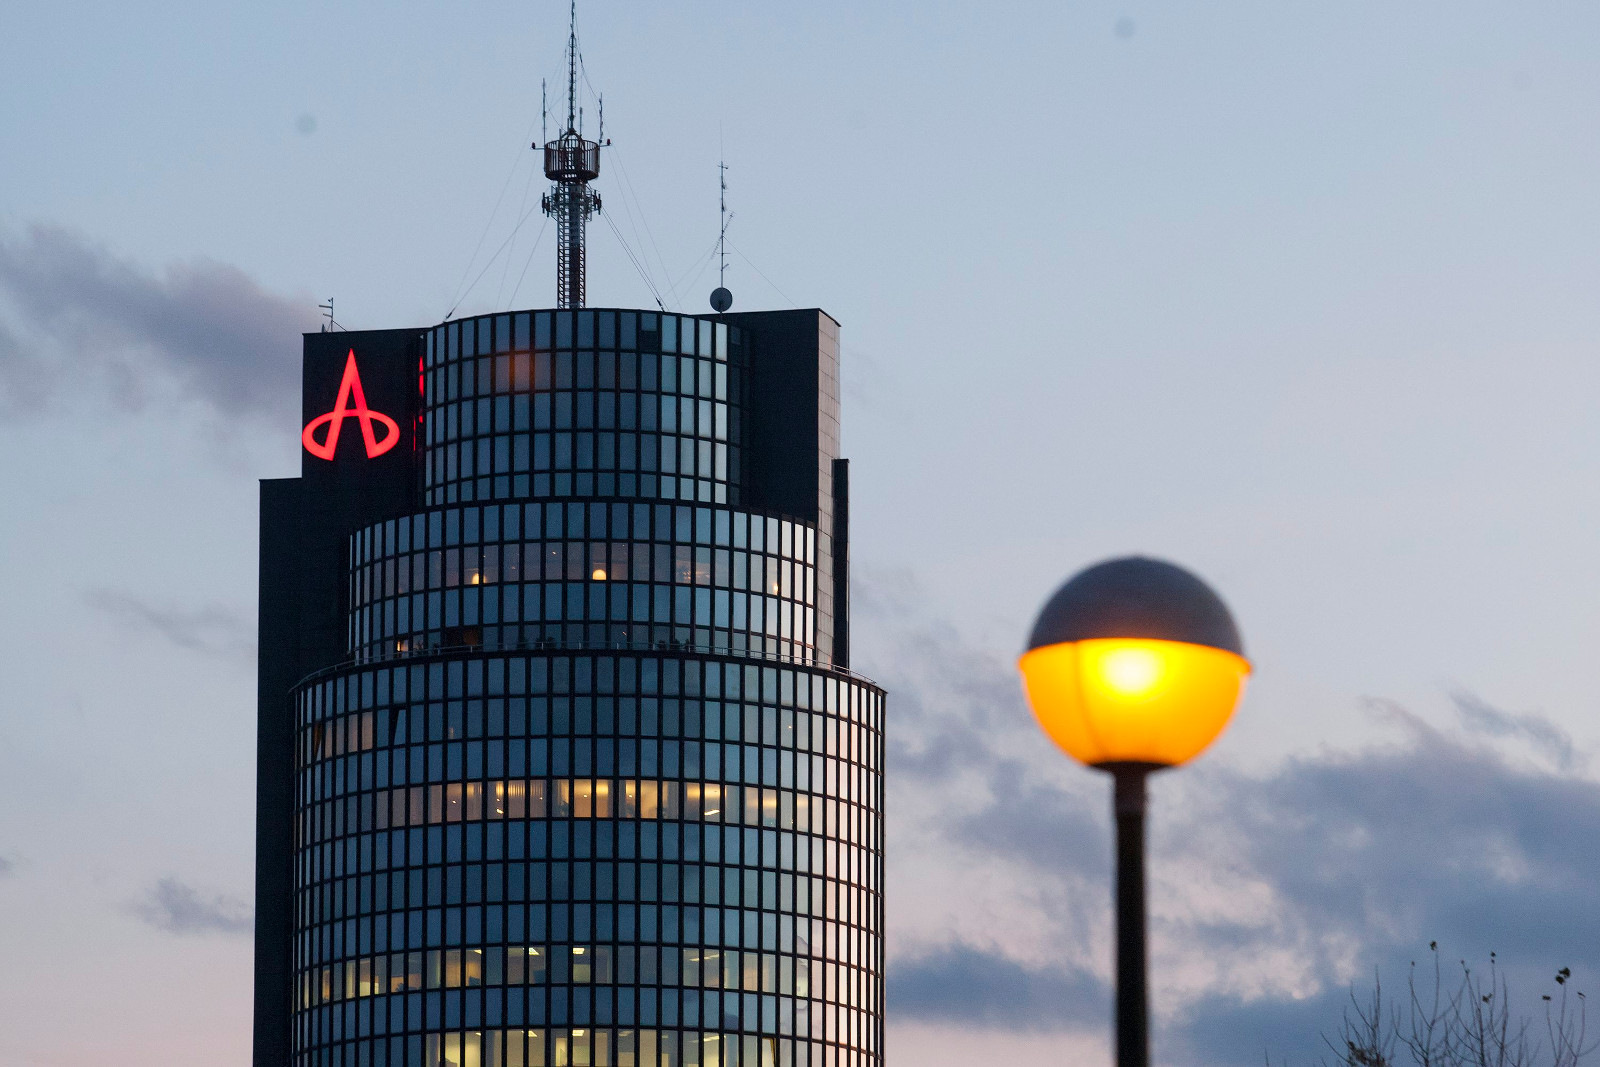 Sede dell'Agrokor (foto eastjournal)